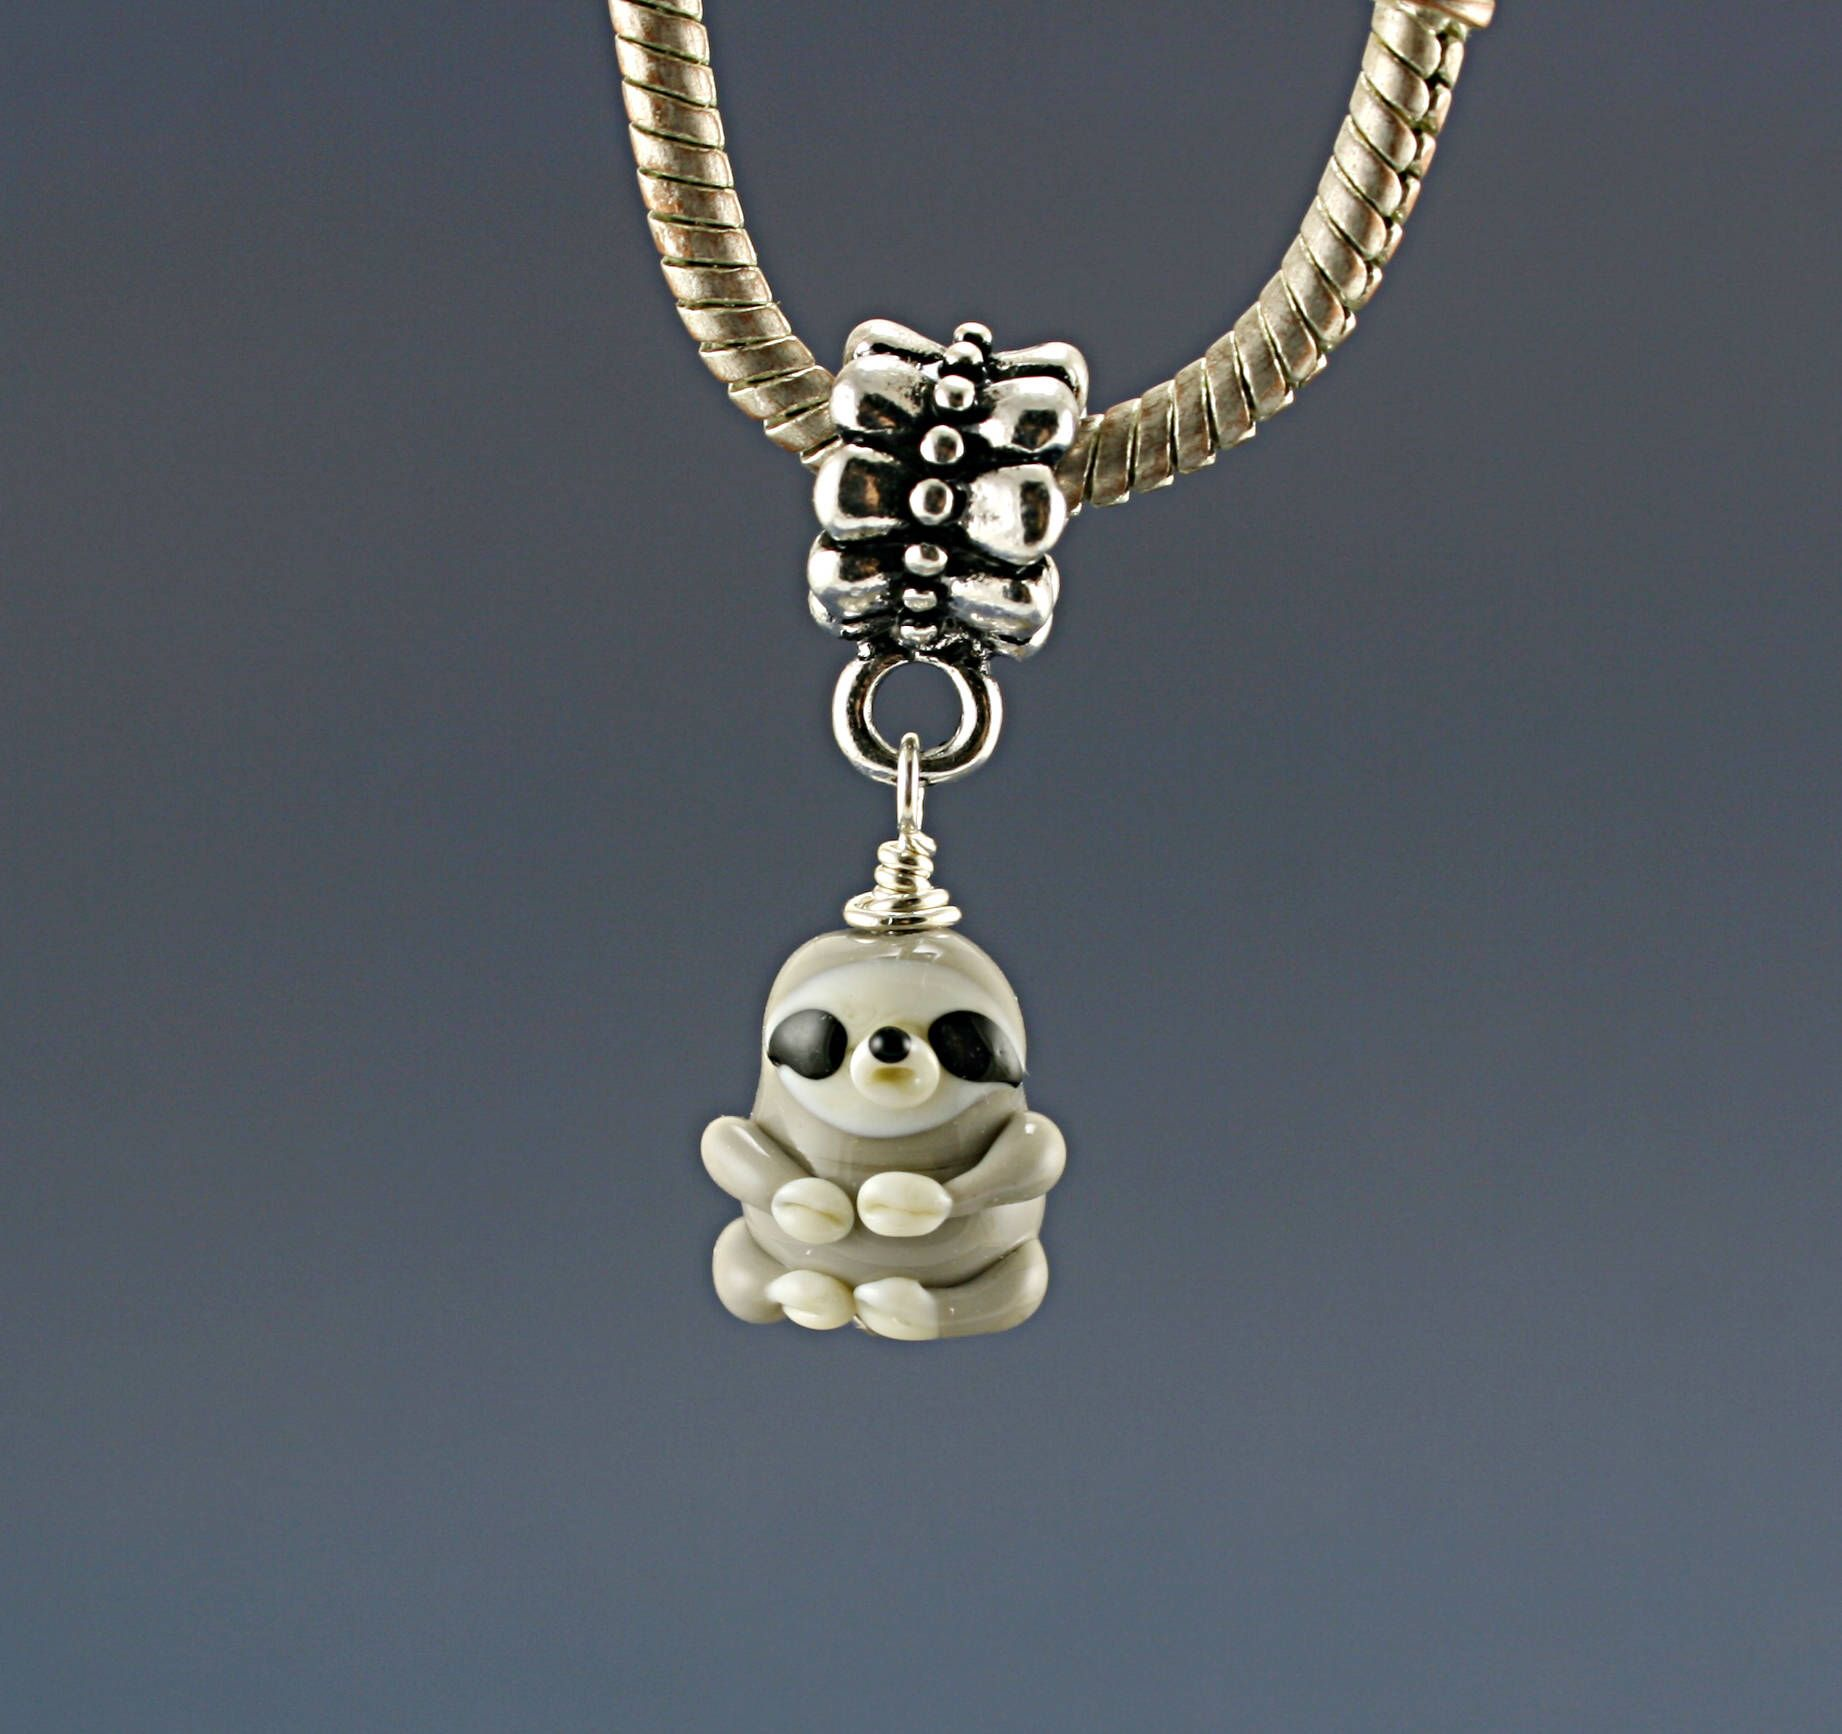 Sloth Charm Pendant Necklace Gift Gl Lampwork Hole Bead Or Bhb Charms Bracelet European Jewelry By Myhyhobby On Etsy